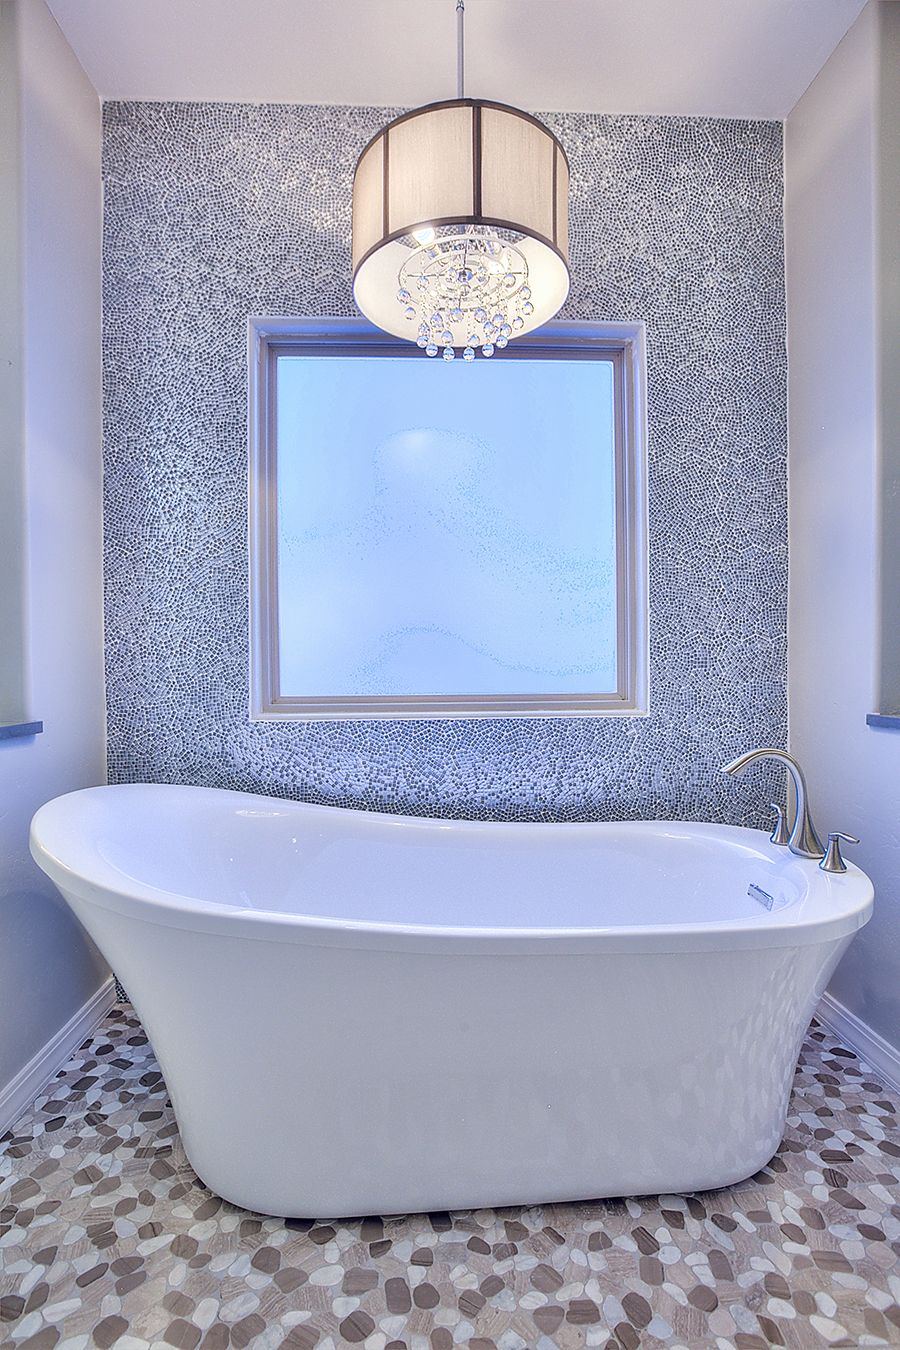 Modern Maax Soaker Tubs Pictures - Bathtub Design Ideas - klotsnet.com